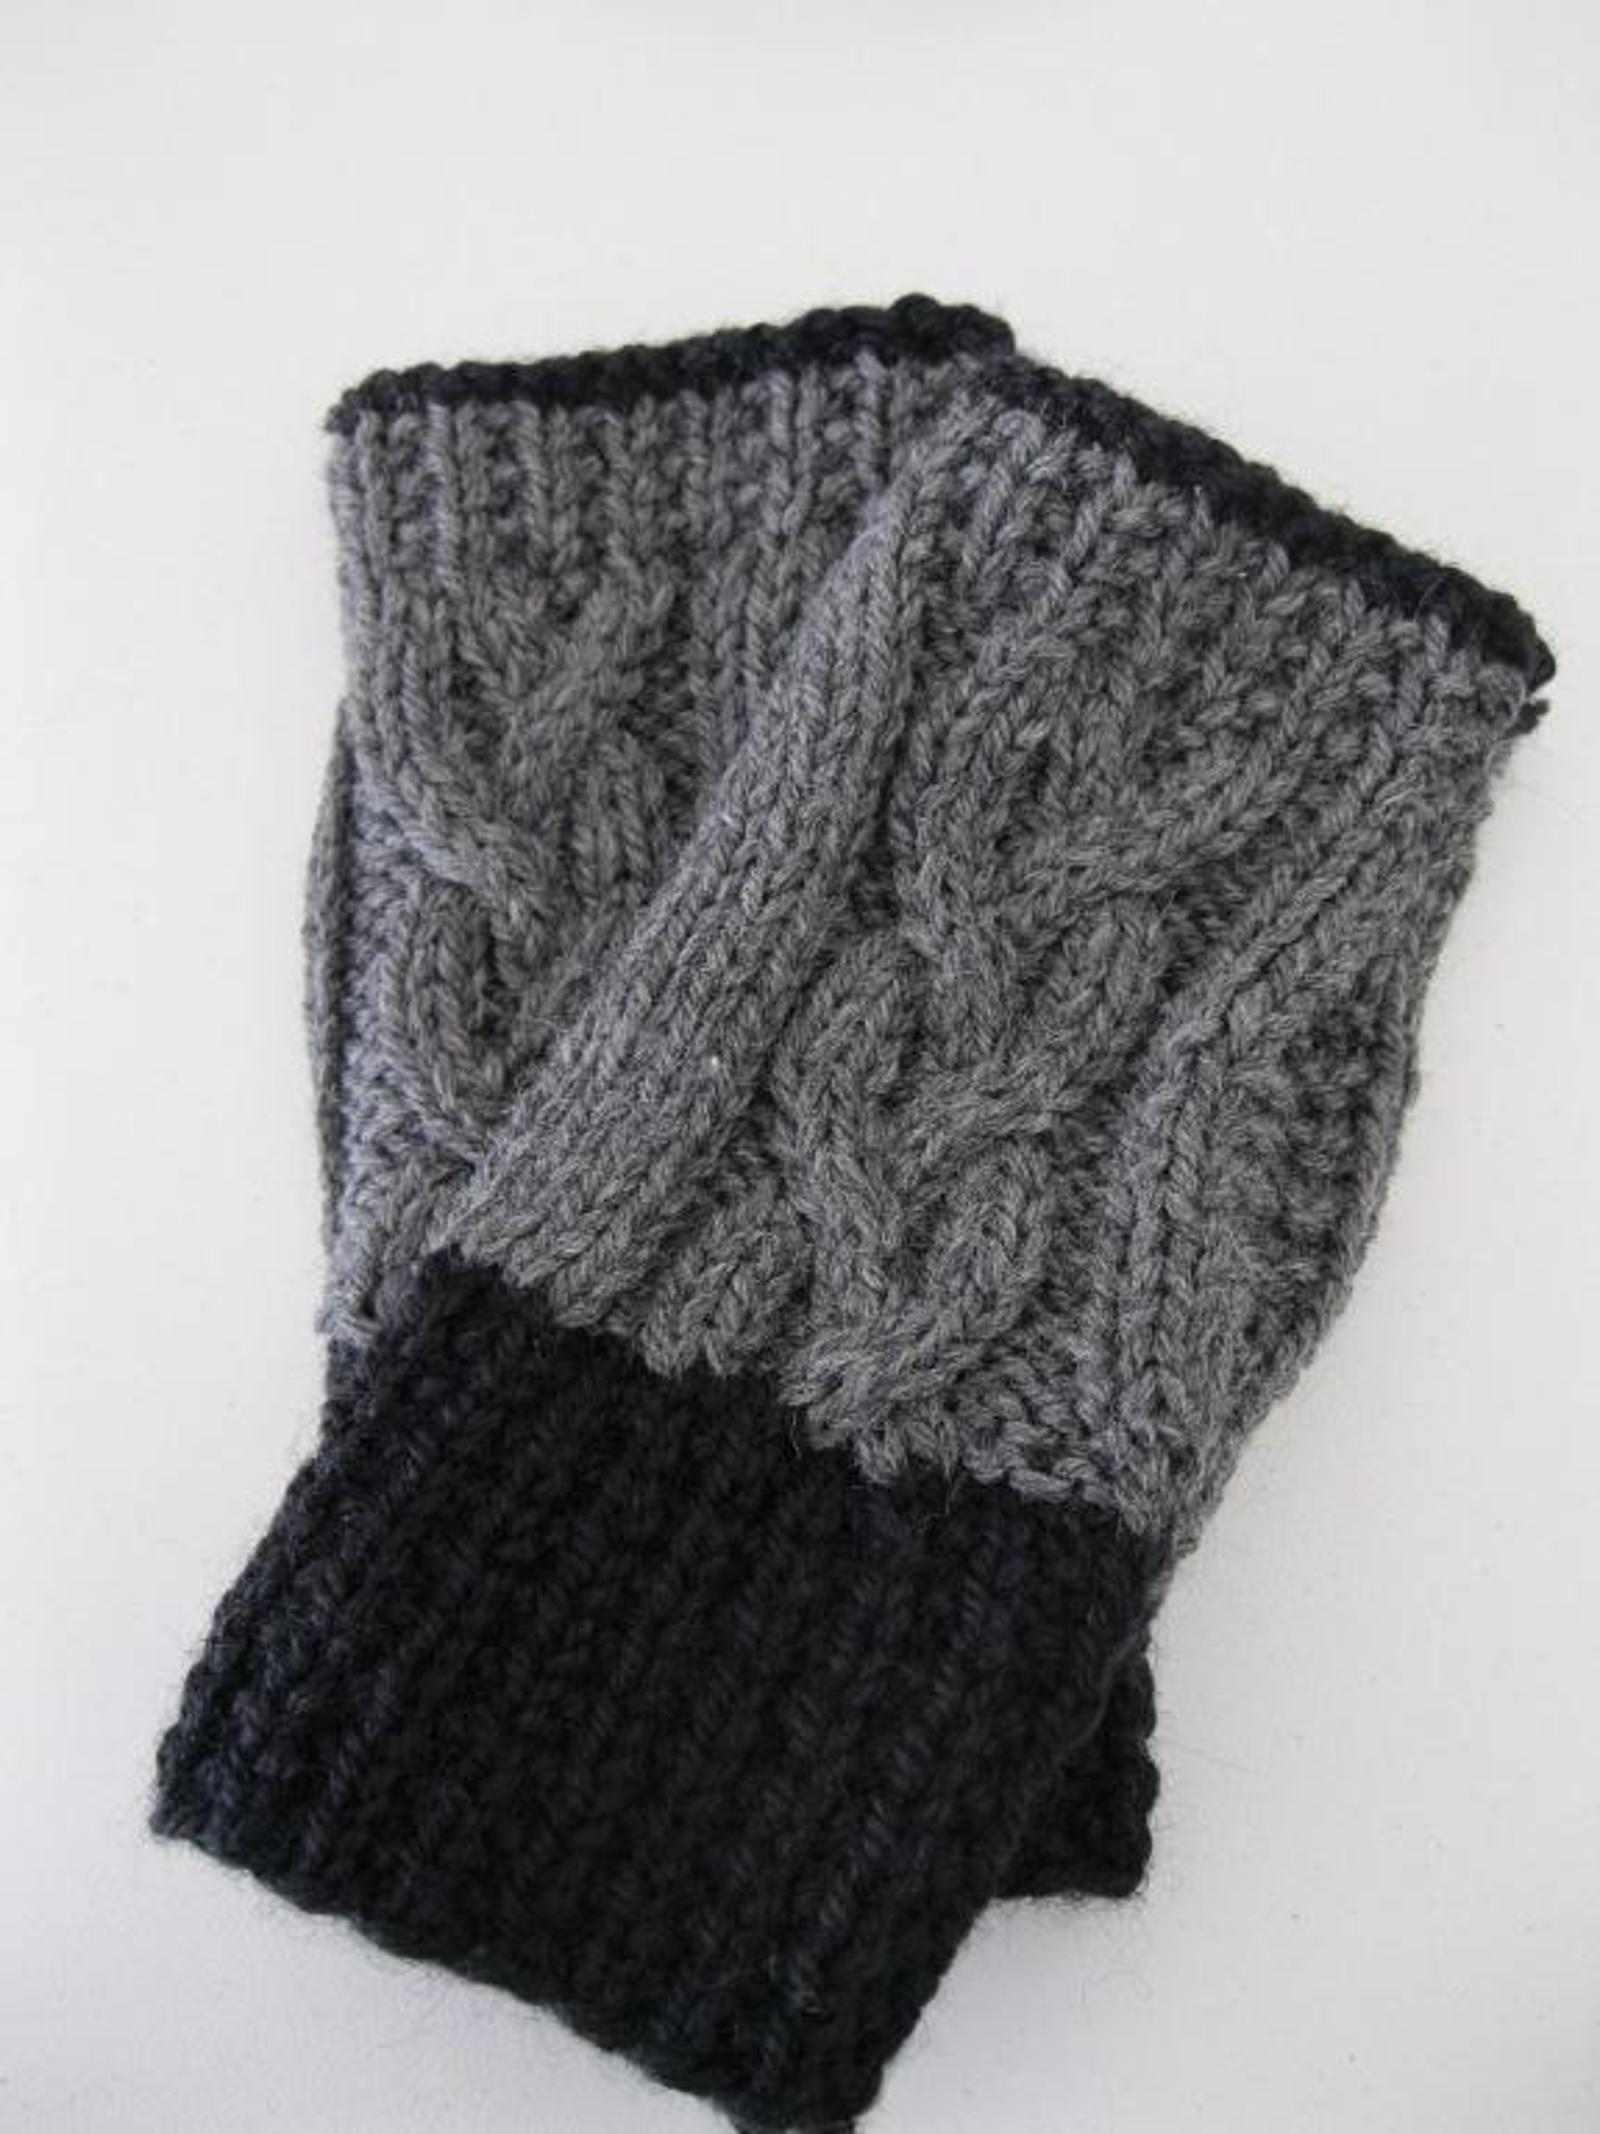 Moon Hollow Braid Cable Fingerless Gloves Knitting Pattern